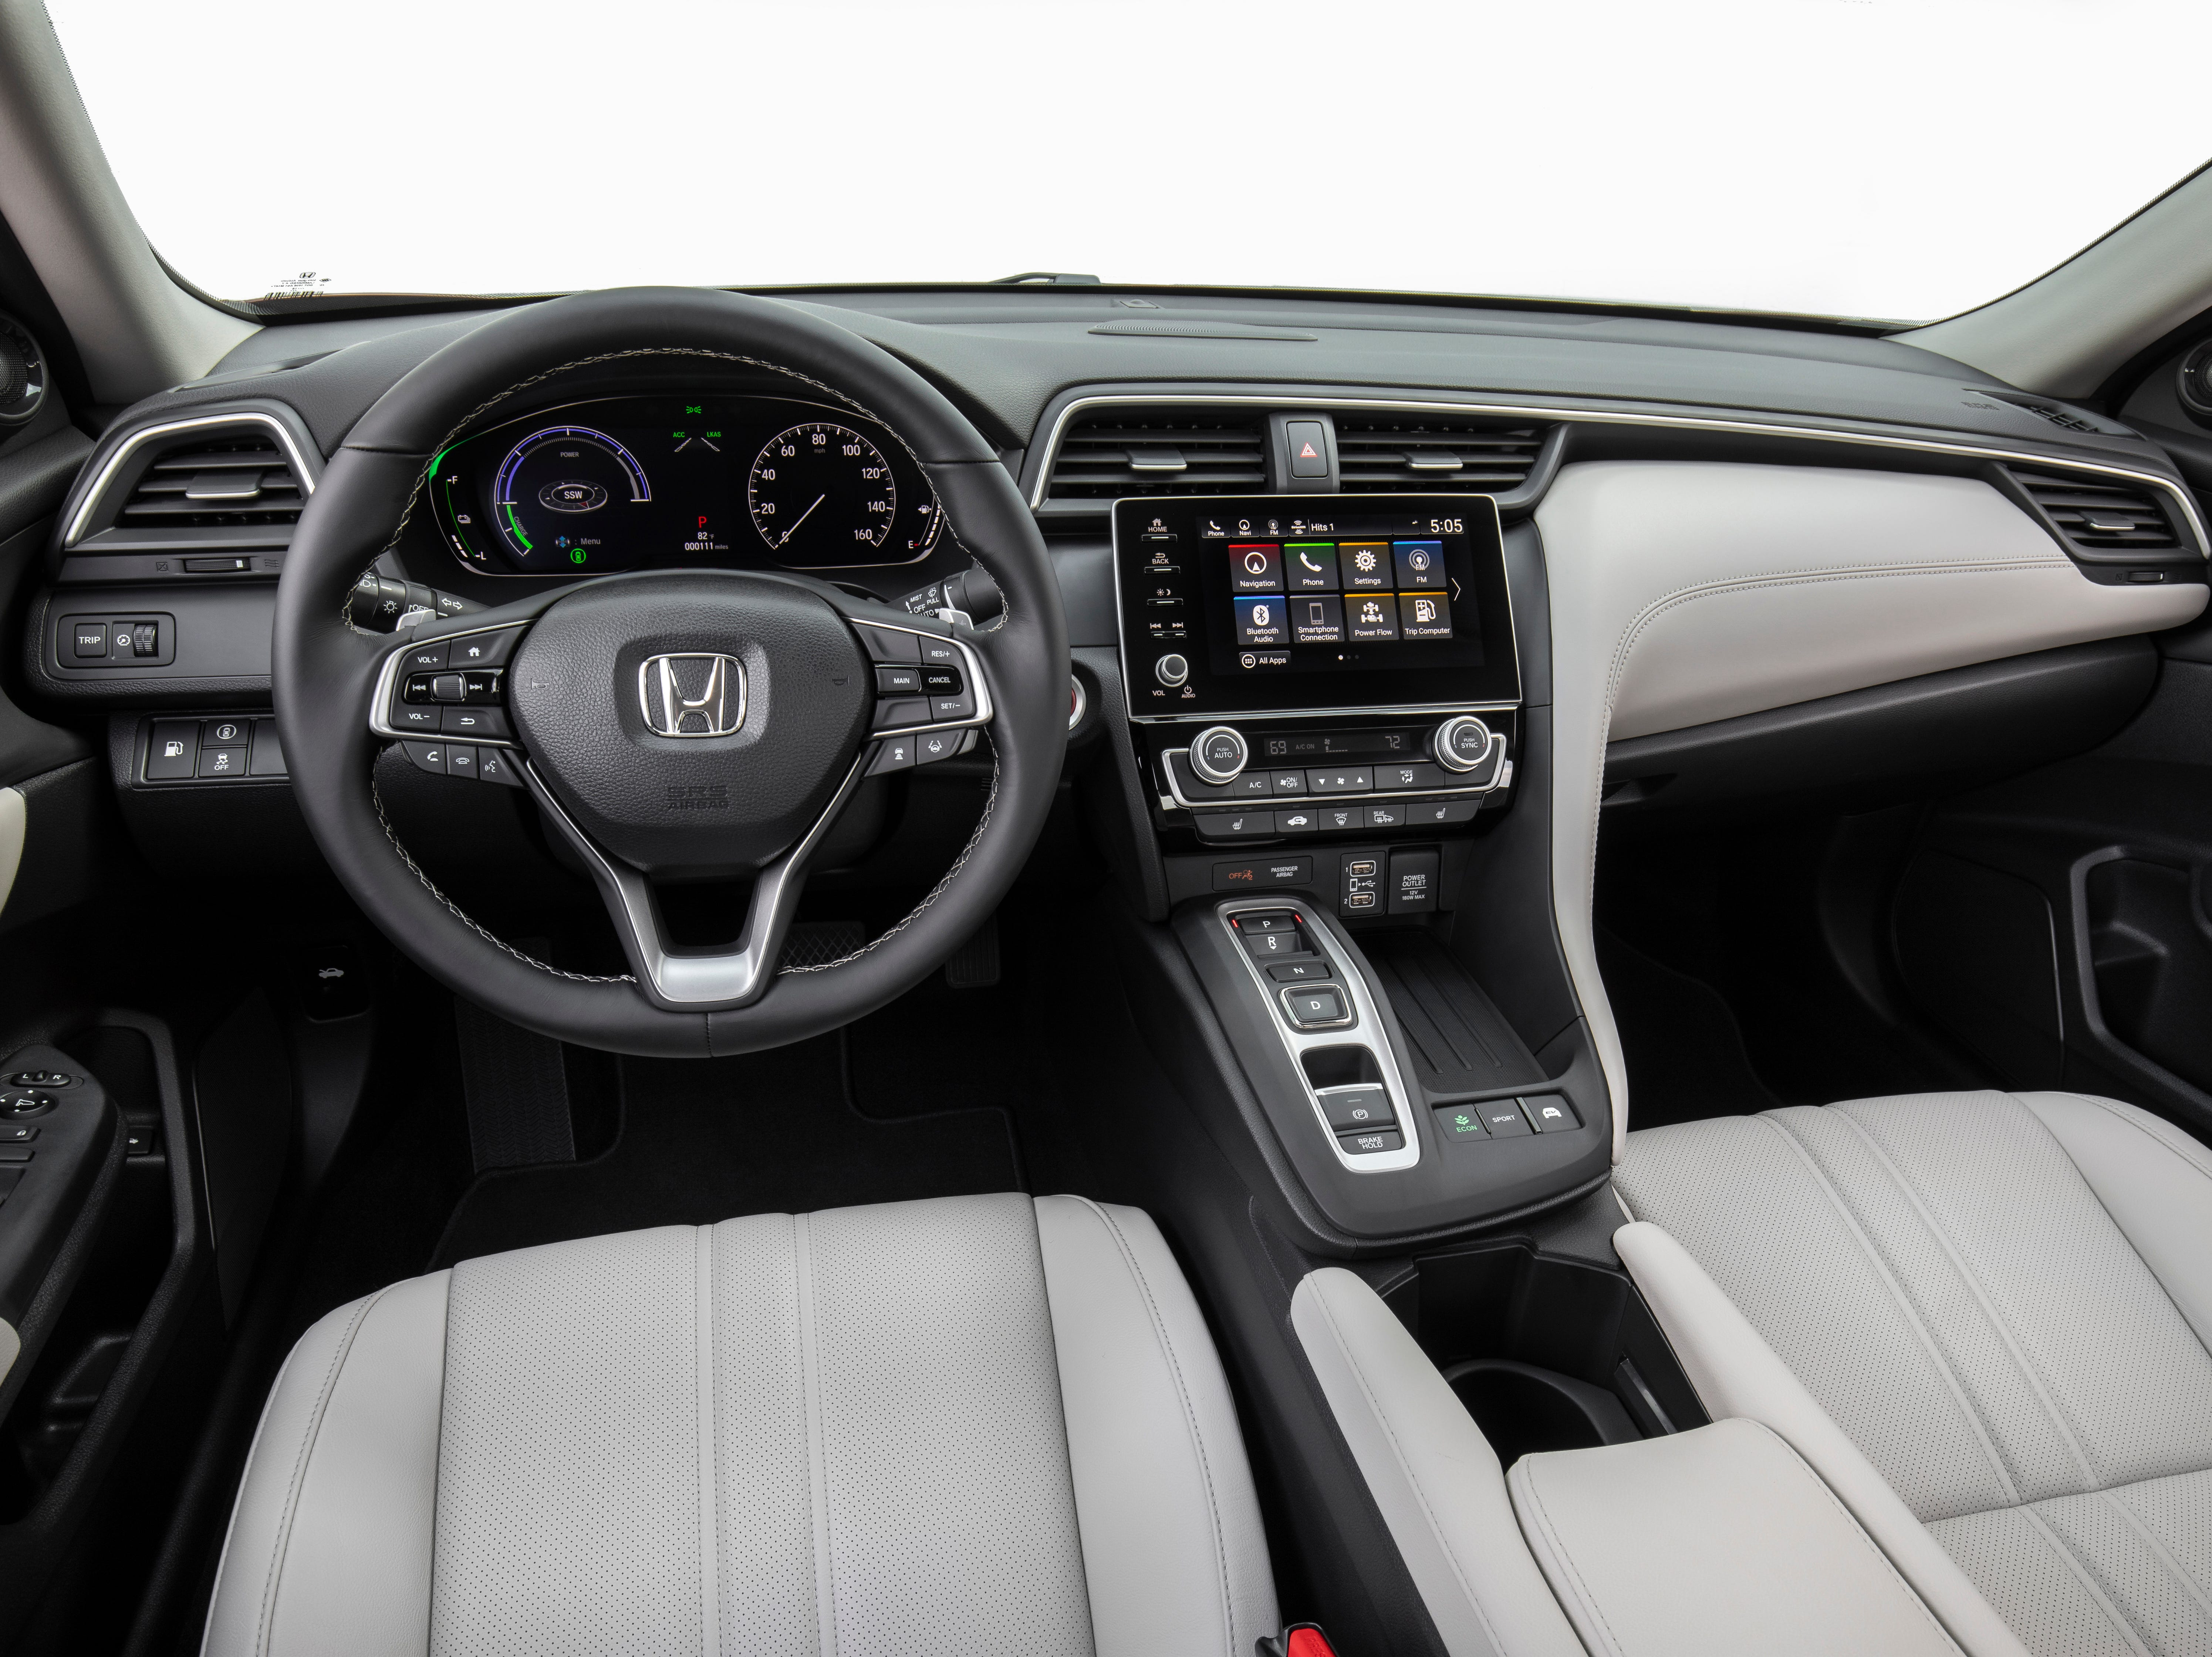 Nice digs. With its Acura-style shifter and roomy, tablet-dominated console, the 2019 Honda Insight boasts a premium vibe aimed at green customers.